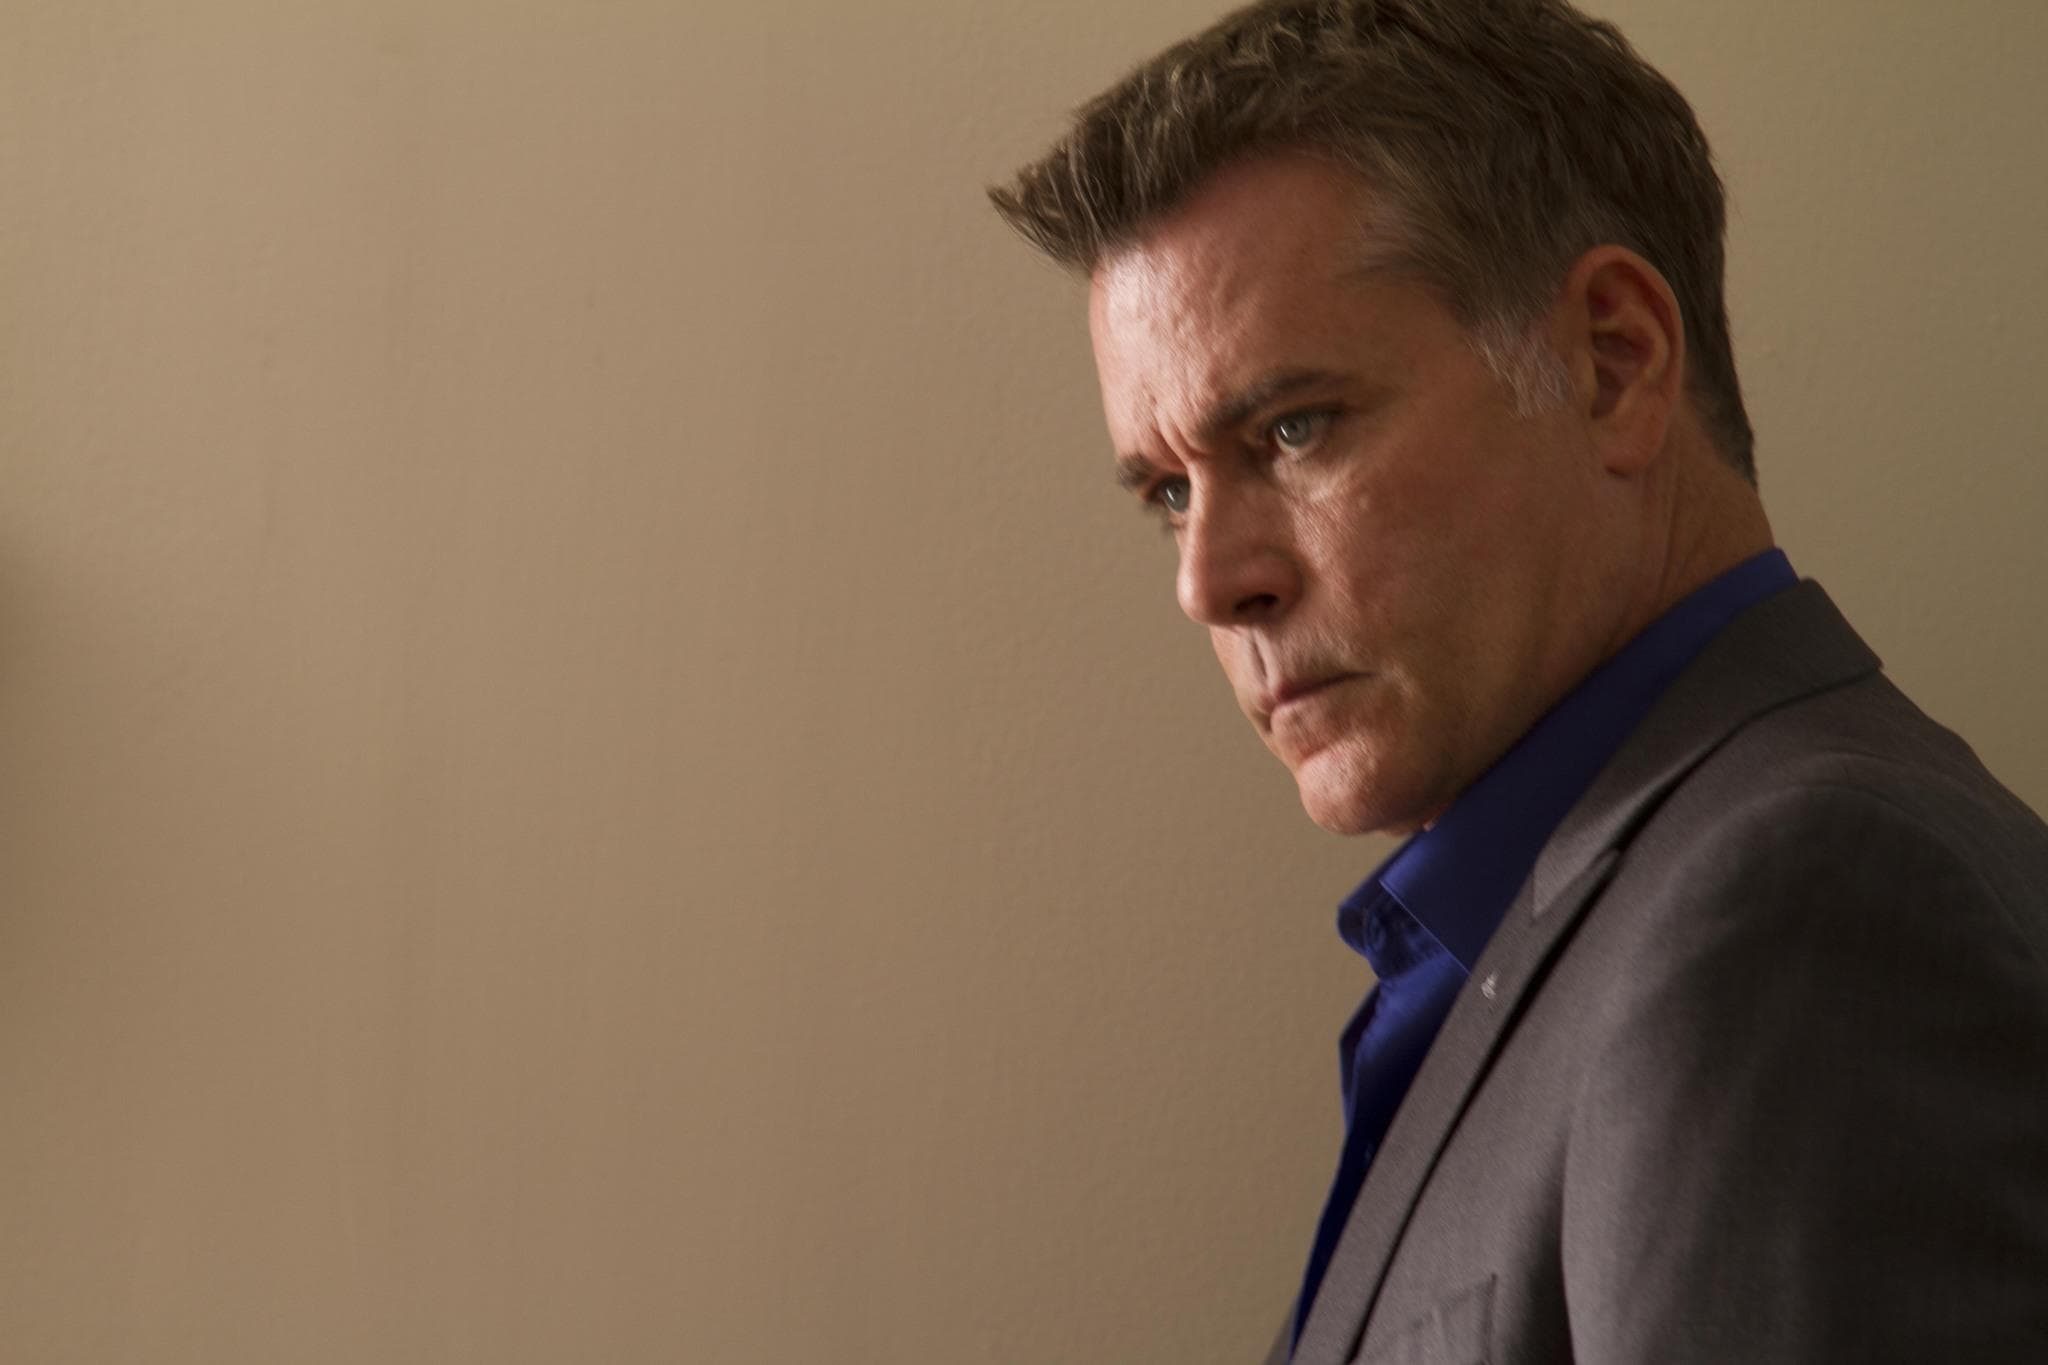 Ray Liotta Wallpapers hd